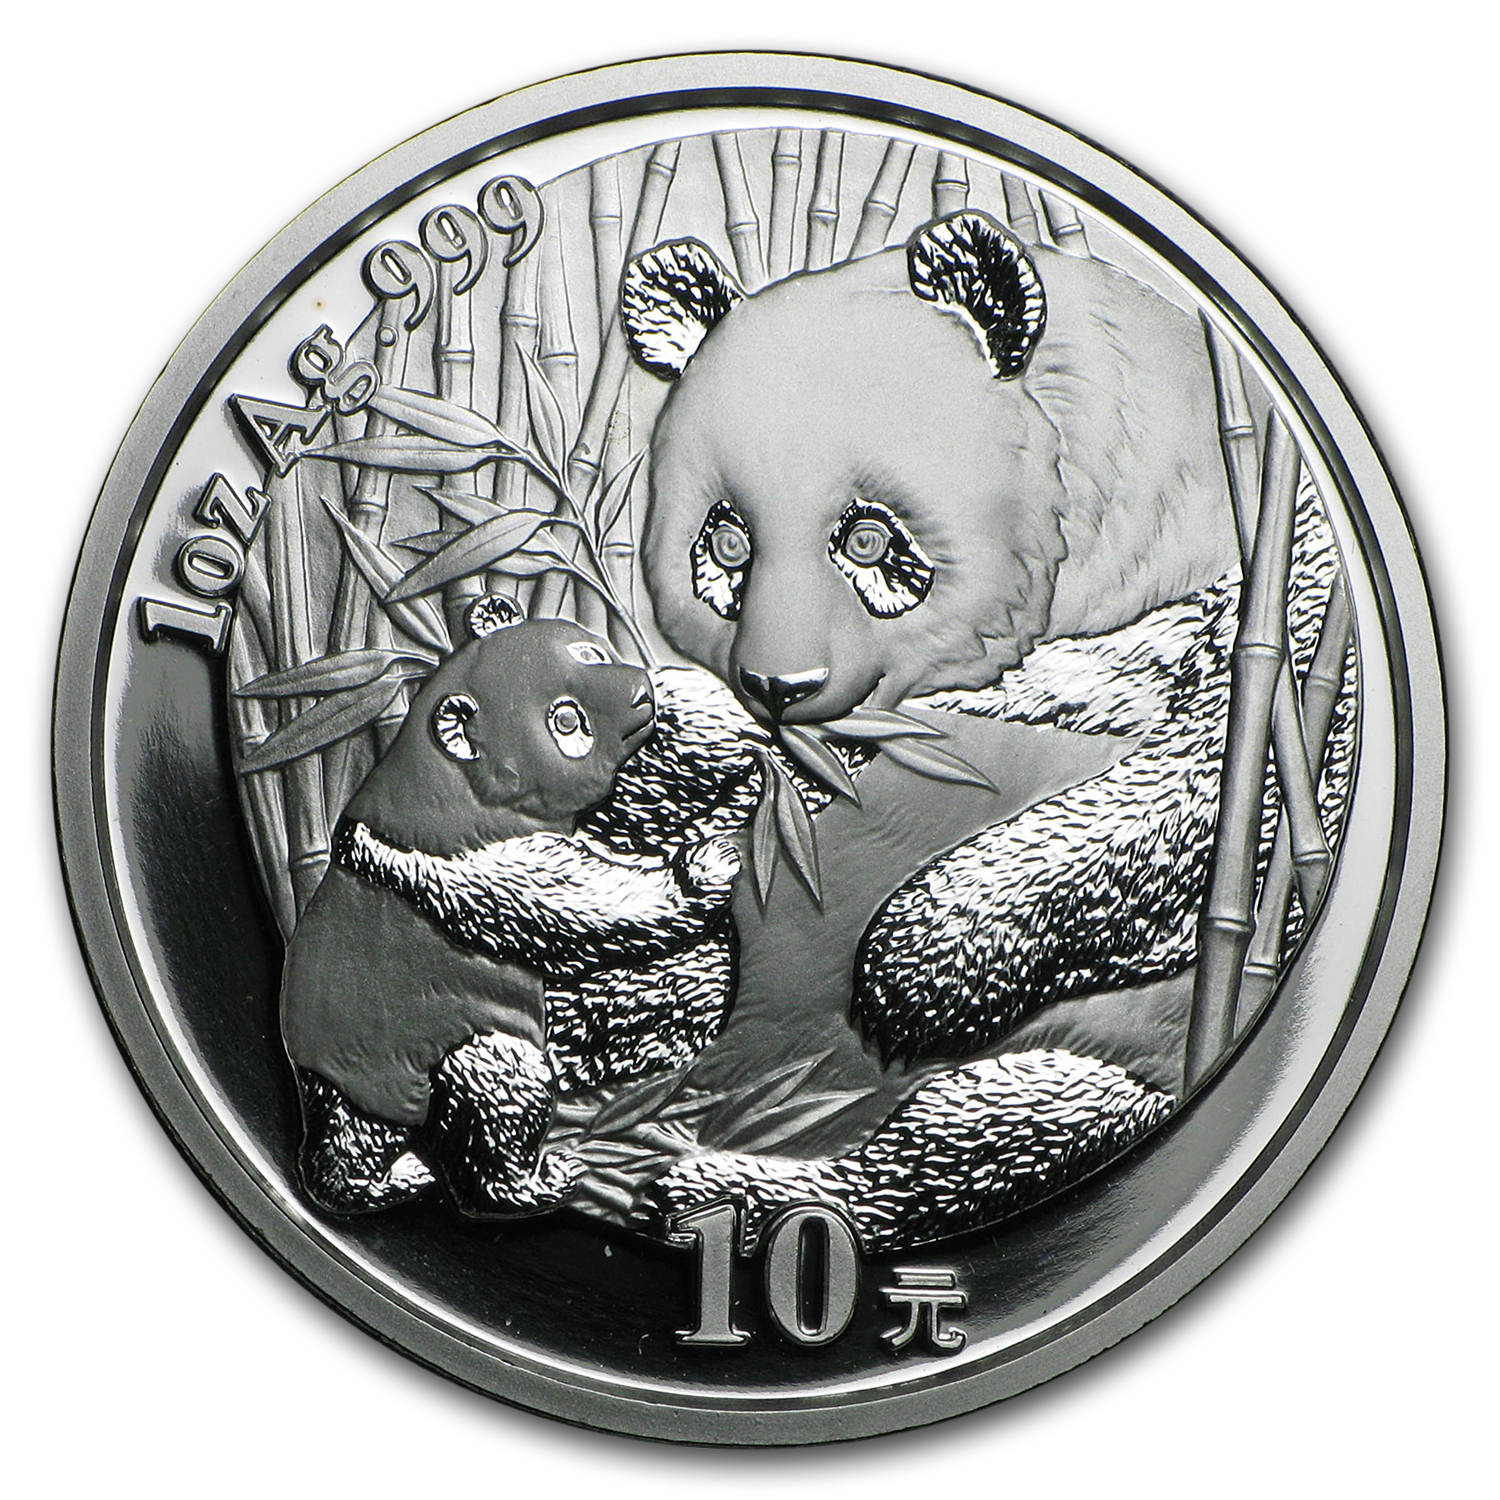 2005 China 1 oz Silver Panda BU (Out of Plastic)